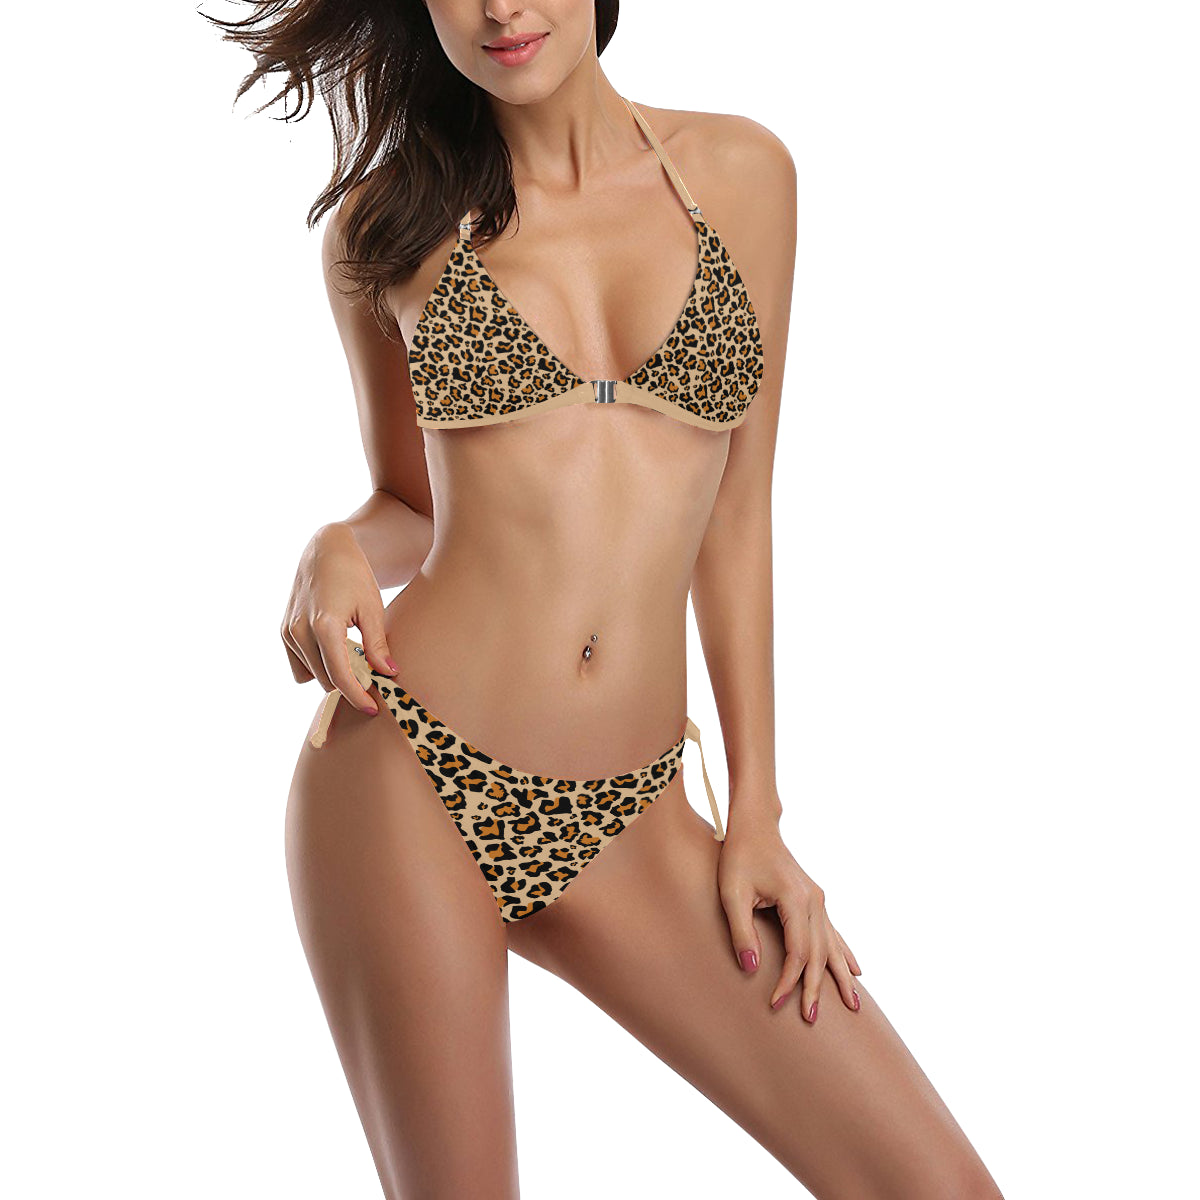 Cheetah Print Bikini Set, Sexy Leopard Animal, Halter Cheeky High Waist Cut Bikini Swimsuit with Front Buckle, Bathing Suit Swimwear - Starcove Design